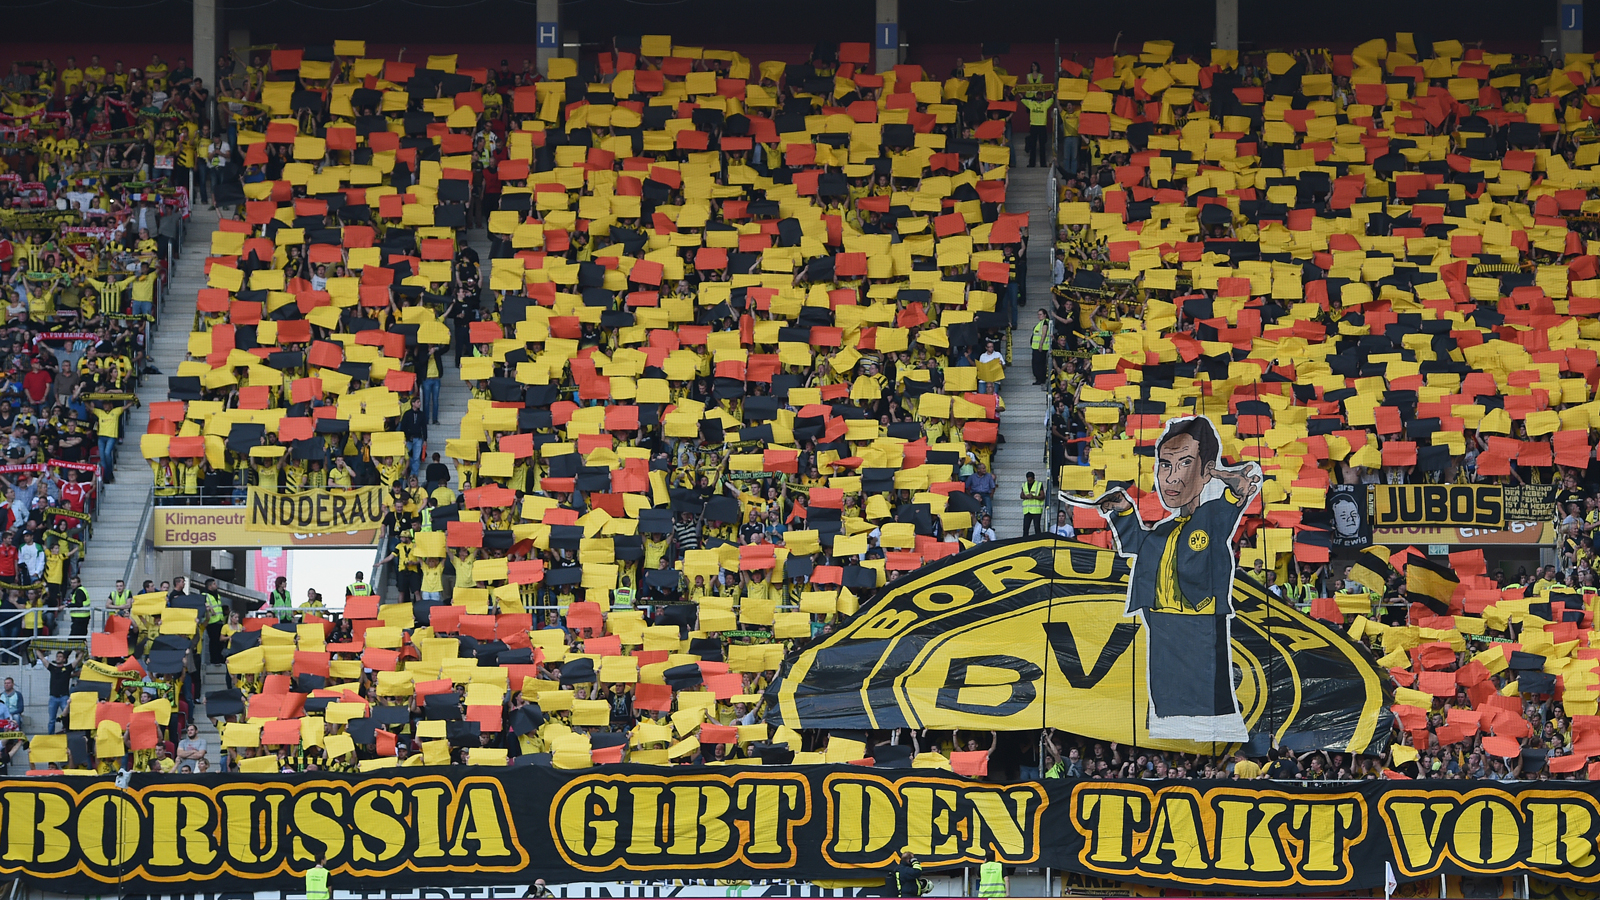 Dortmund fans put on another strong display at a Bundesliga match against Mainz 05.